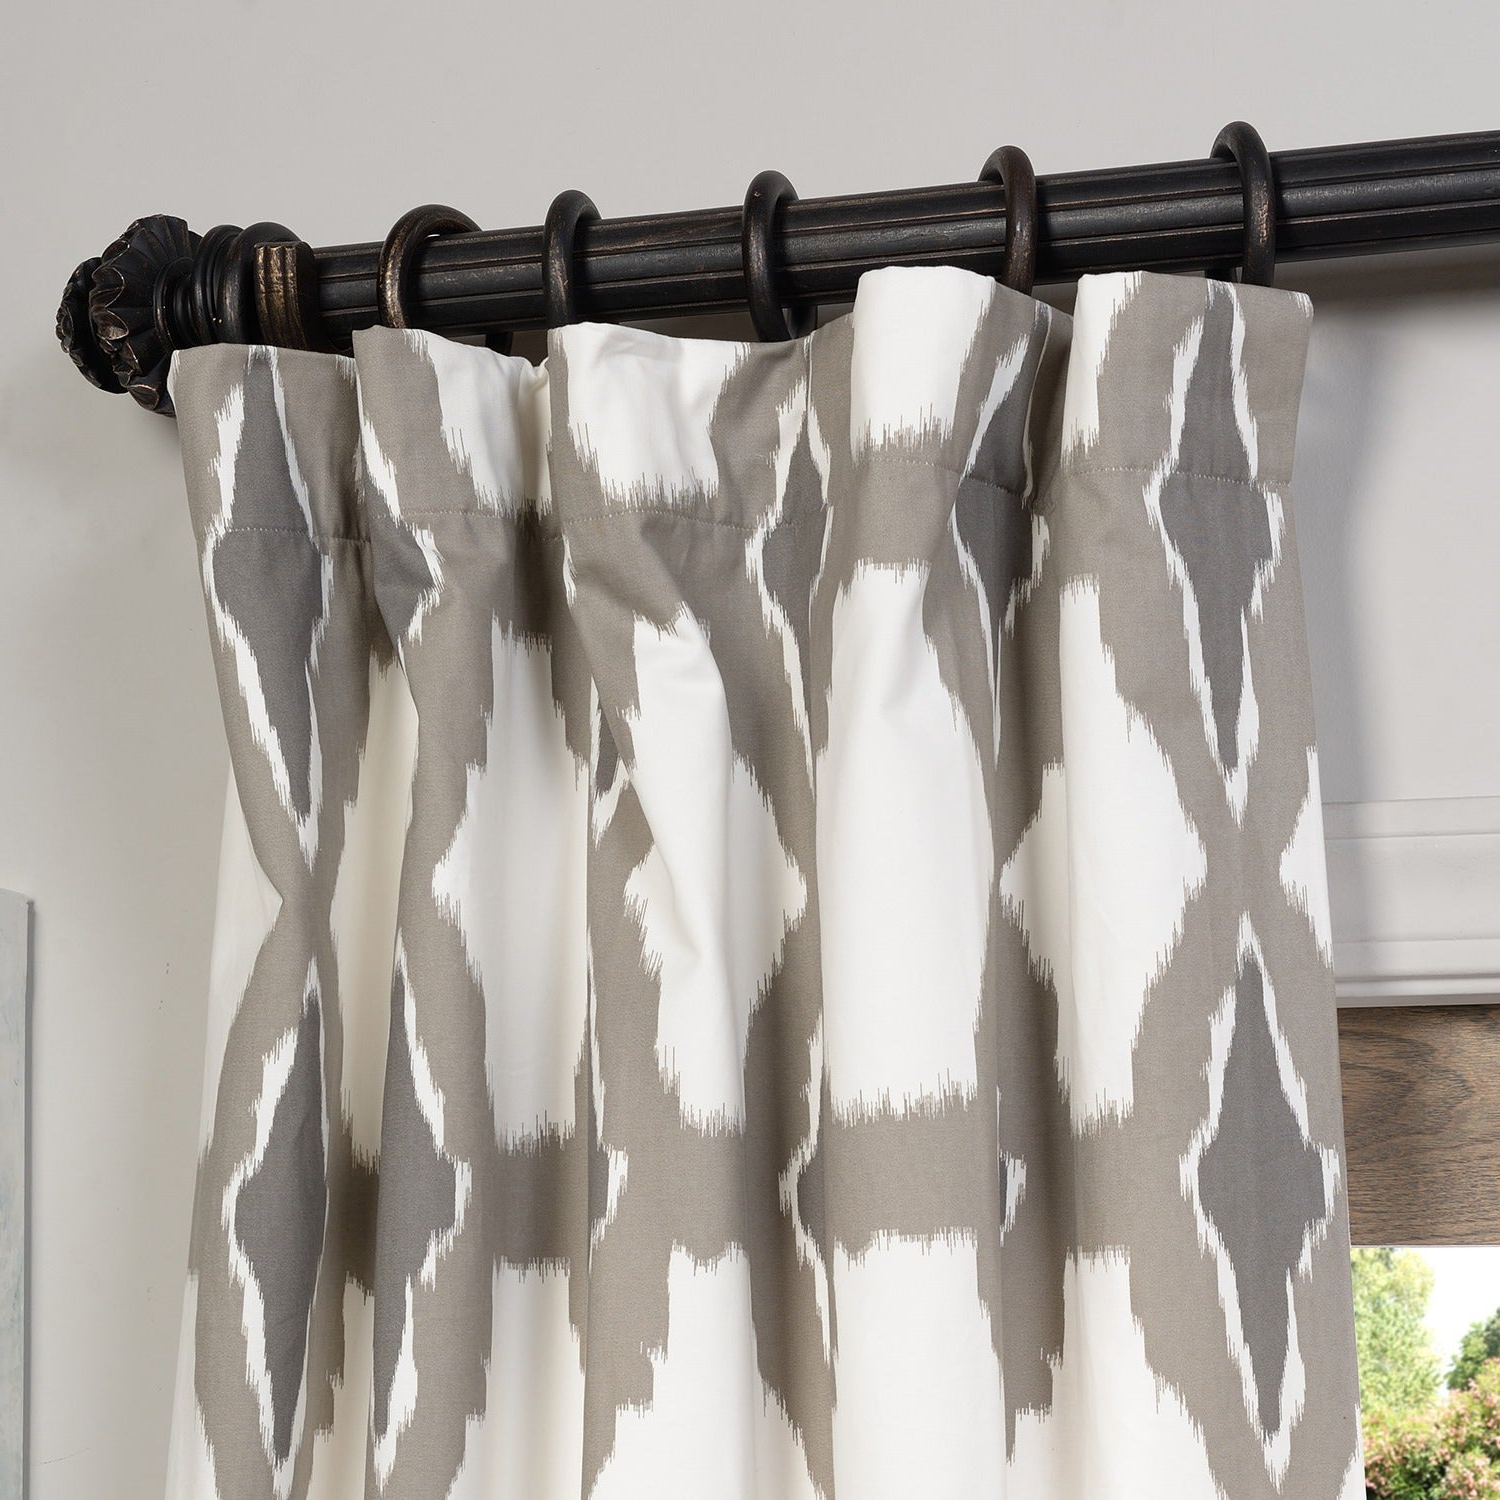 Well Liked Sarong Grey Printed Cotton Pole Pocket Single Curtain Panels Regarding Exclusive Fabrics Sarong Grey Printed Cotton Pole Pocket Single Curtain Panel (View 8 of 20)